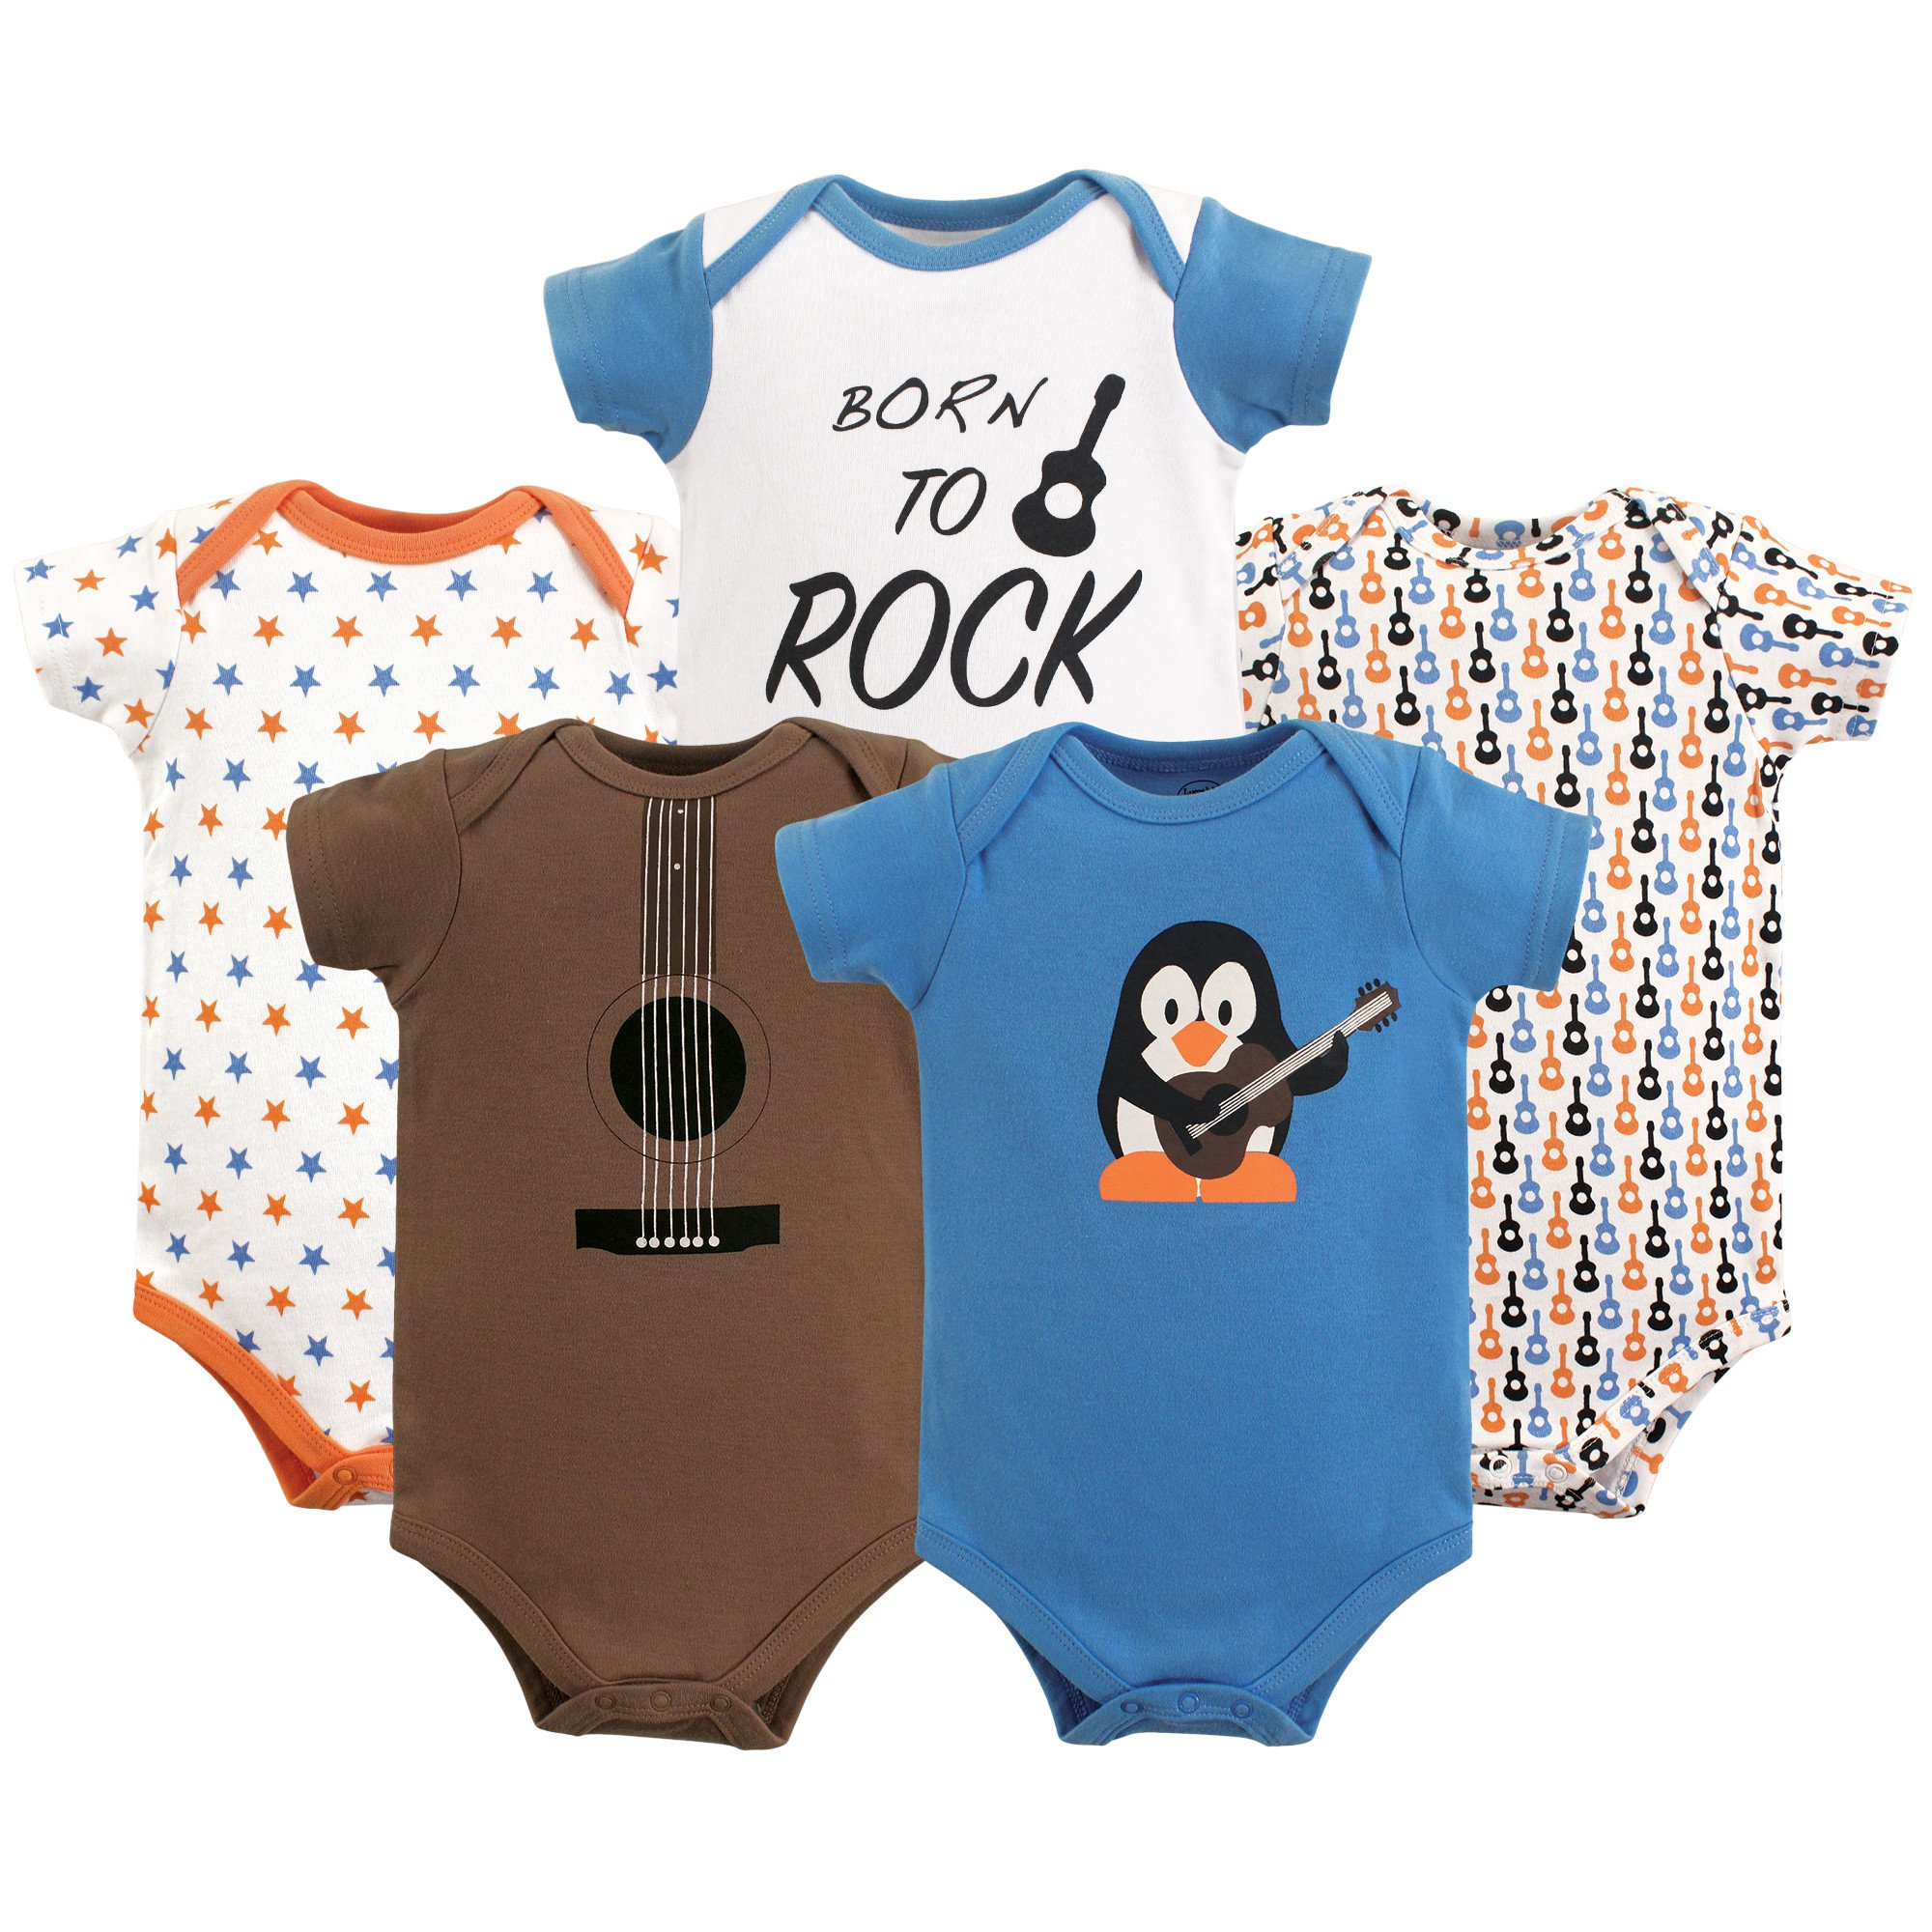 Luvable Friends Baby Infant Basic Bodysuit, 5 Pack, Penguin Guitar, 6M(3-6 Months) by Luvable Friends